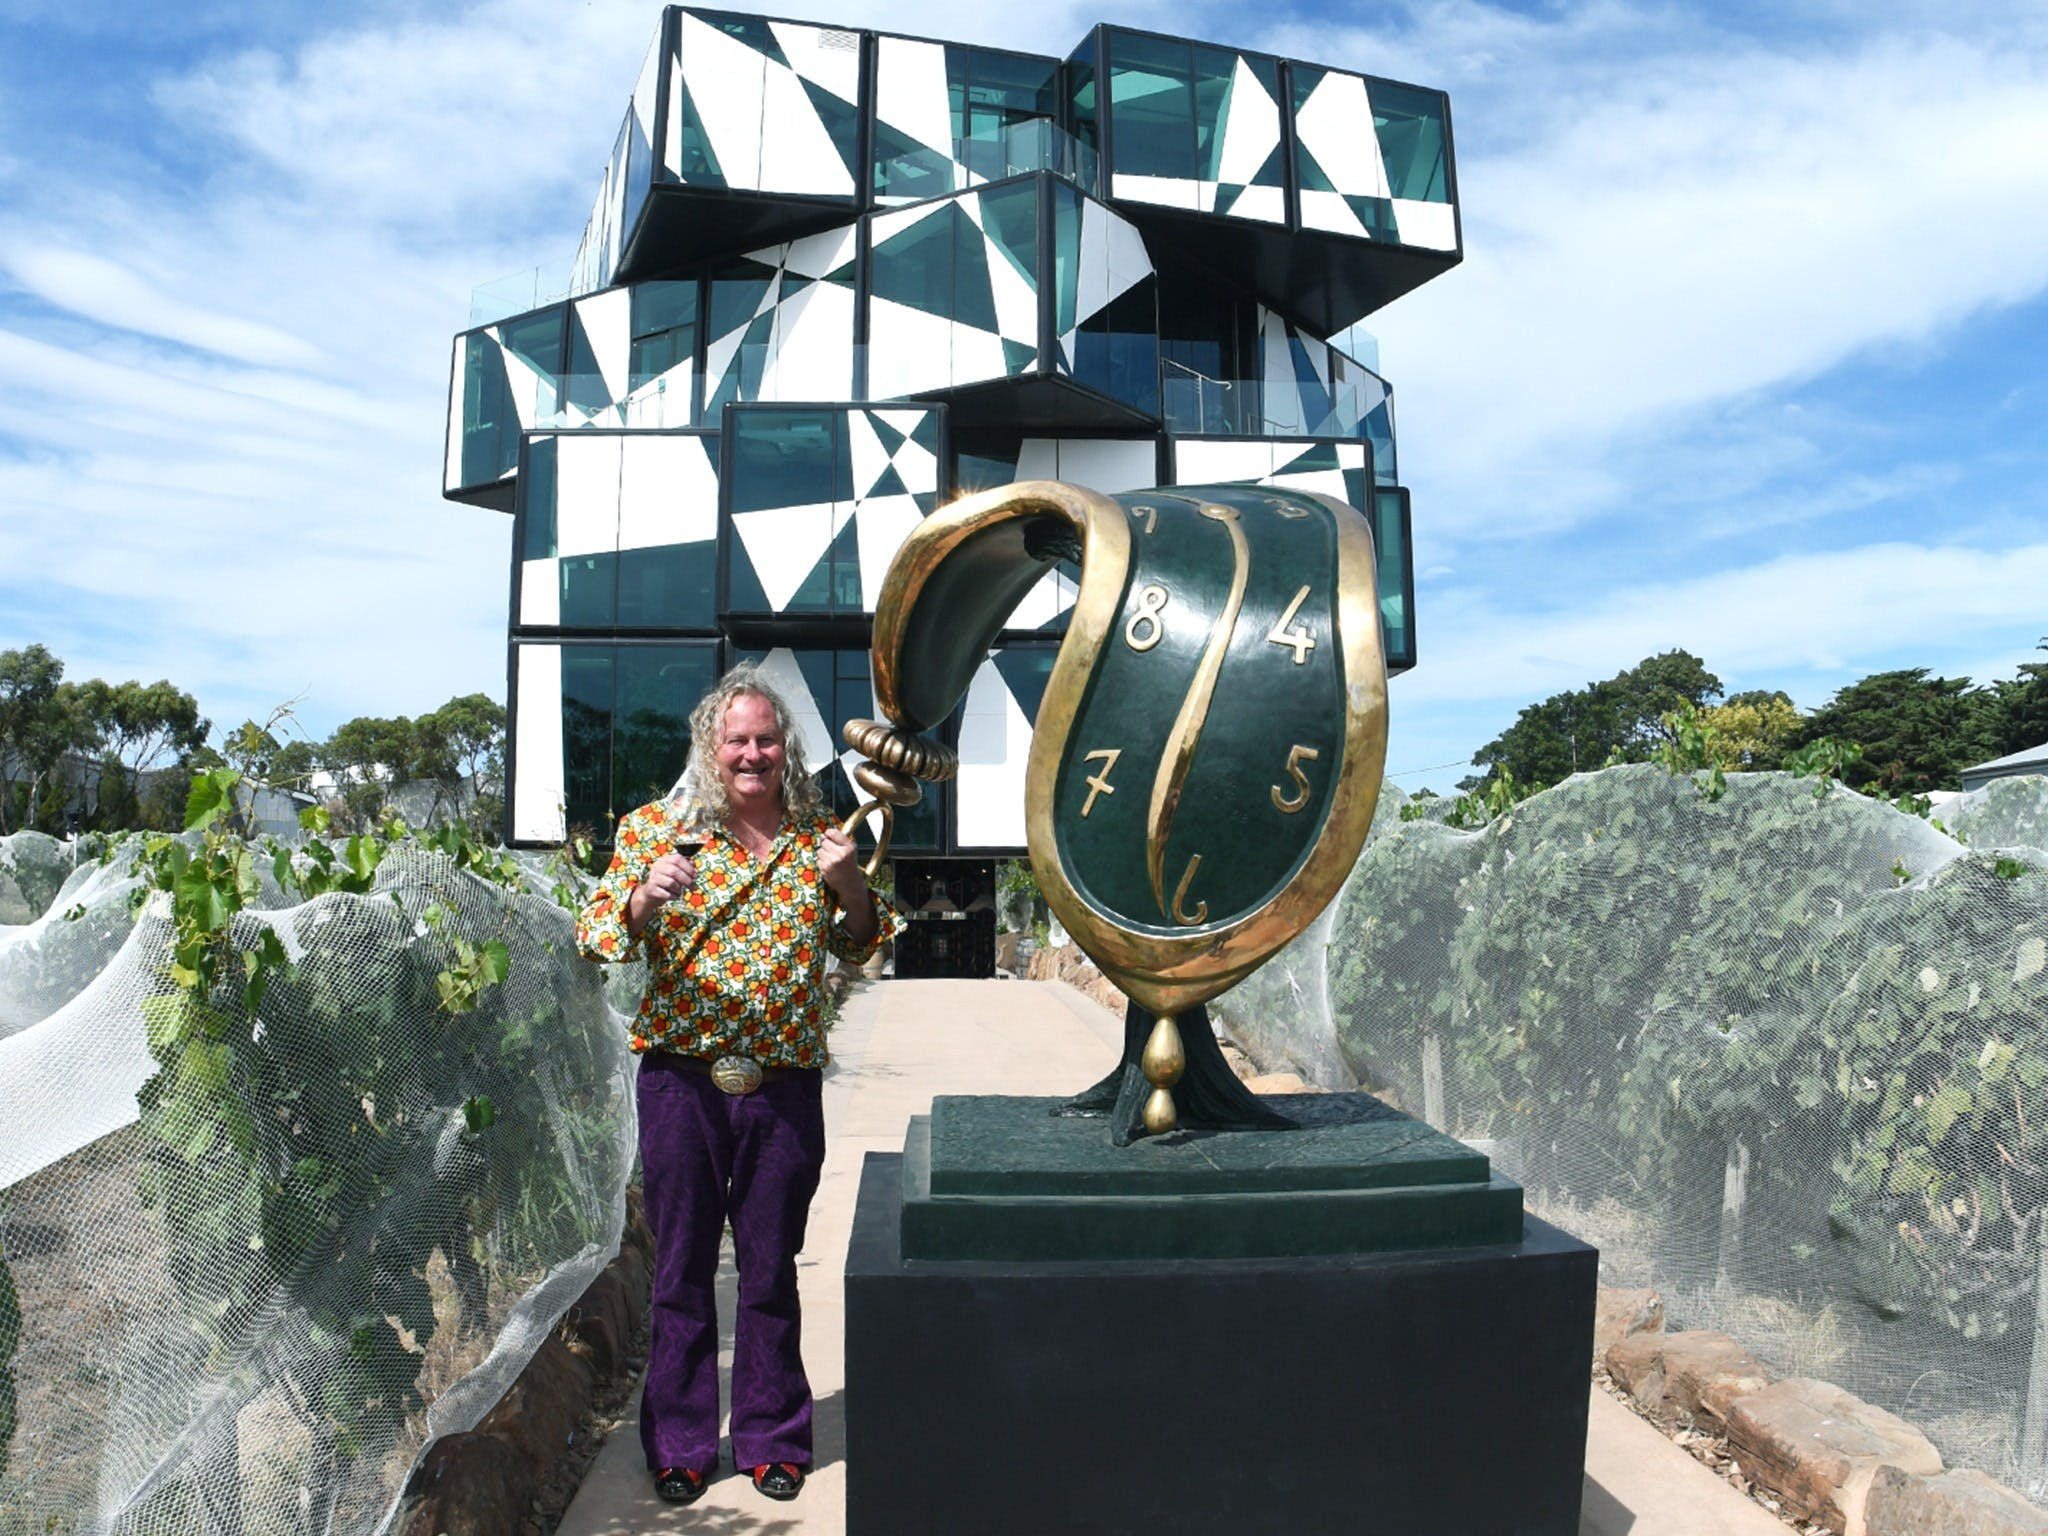 Salvador Dali Sculpture Exhibition - Accommodation Burleigh